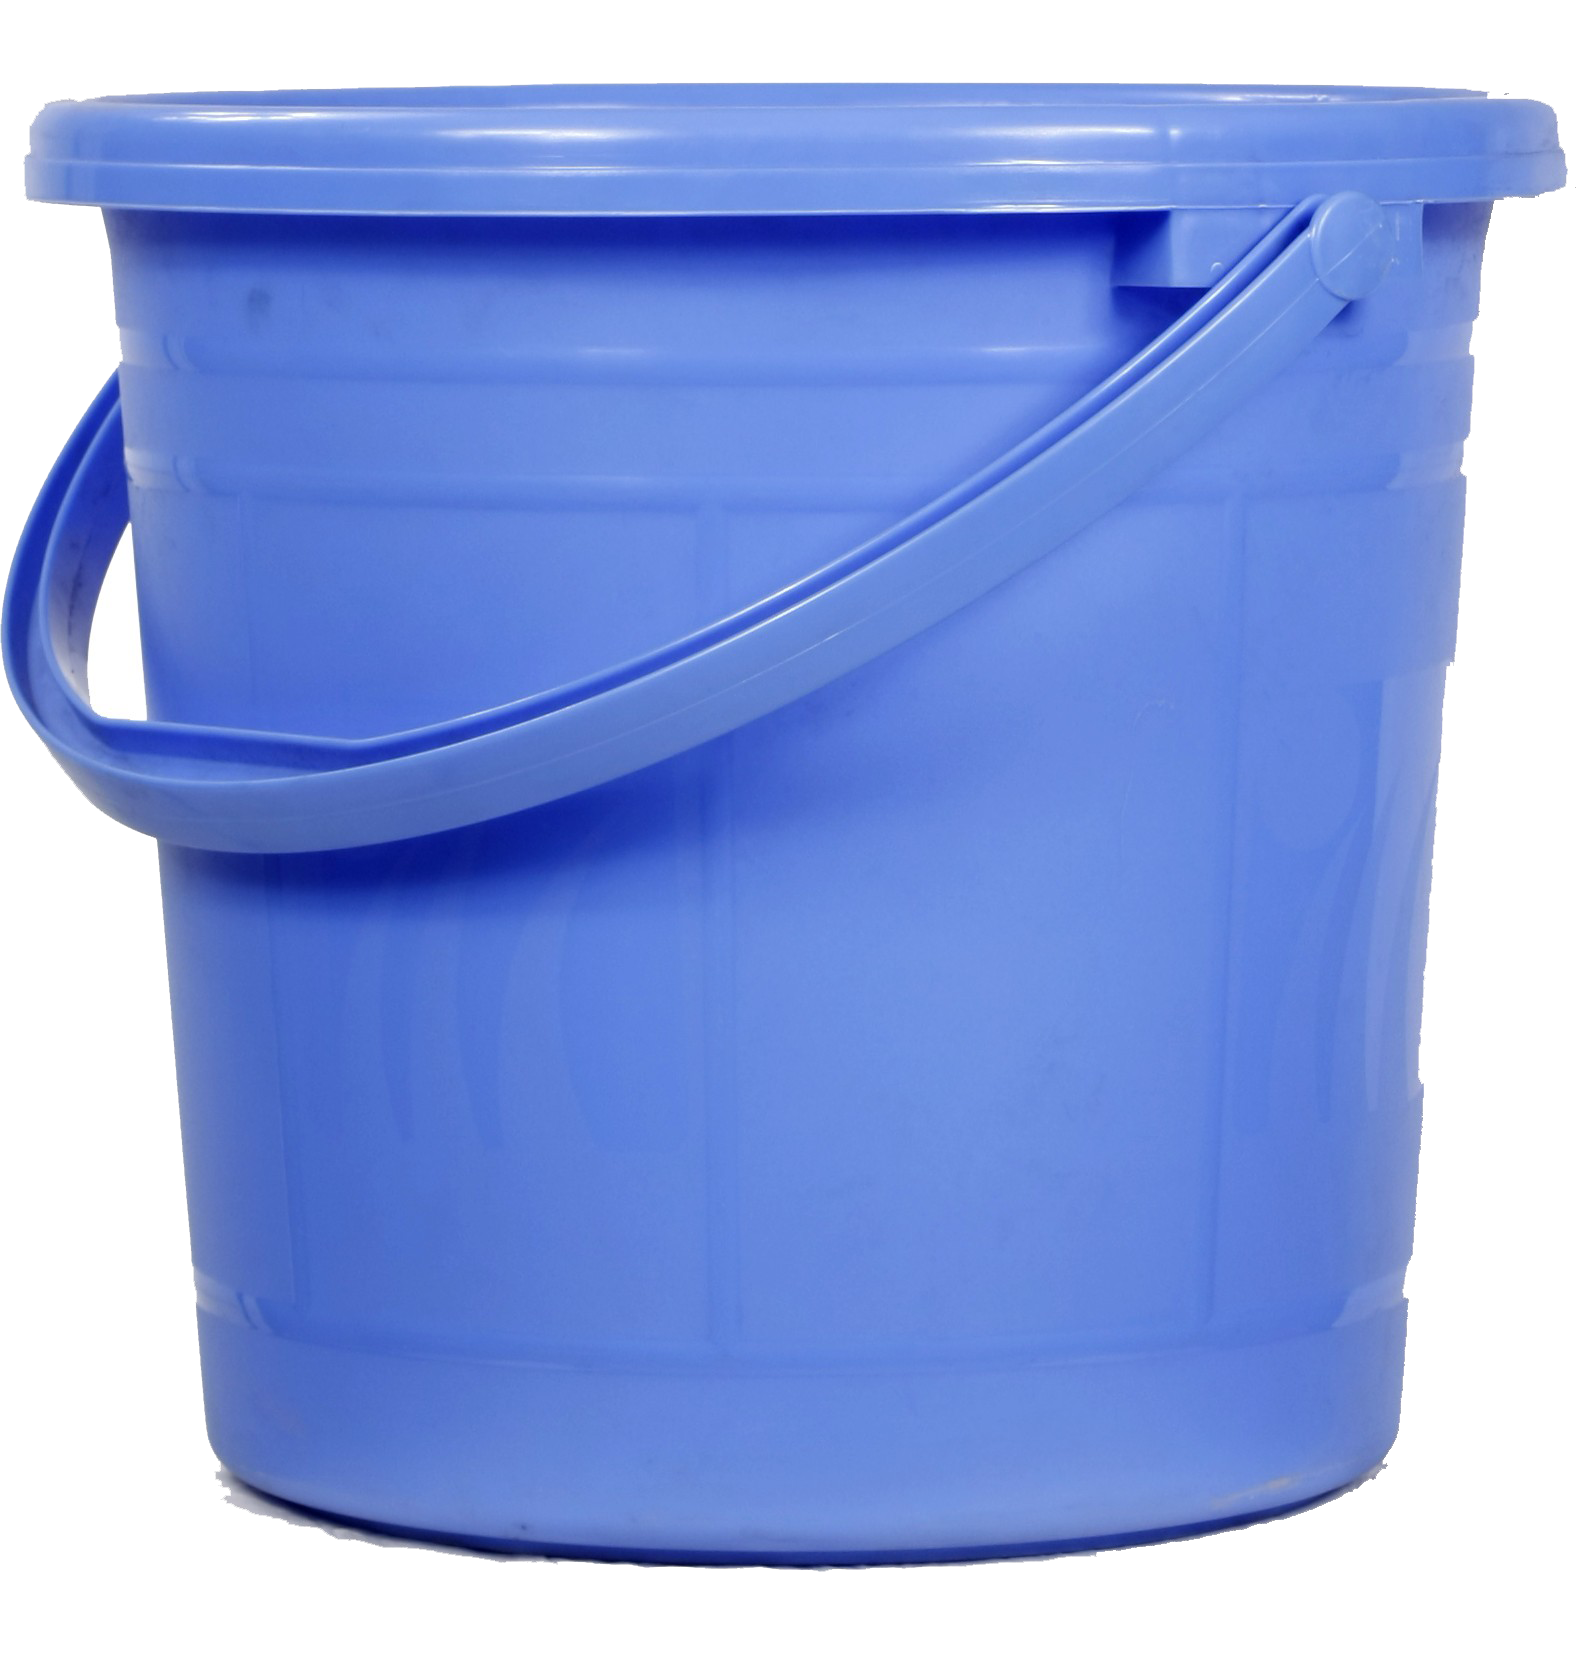 Bucket Free Download Png PNG Image